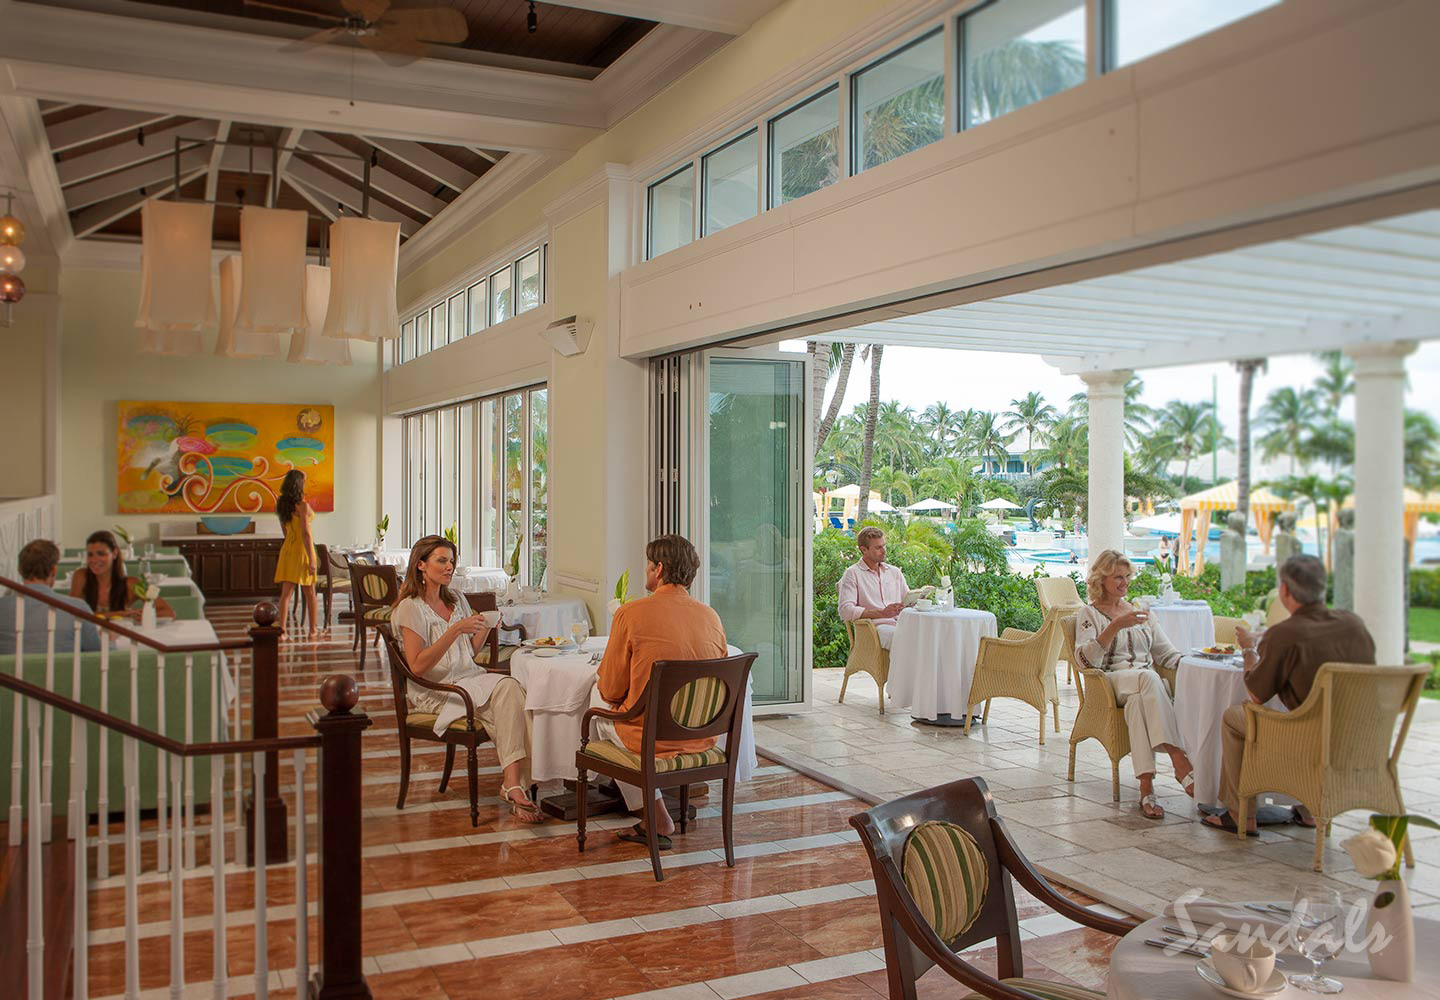 Travel Agency All-Inclusive Resort Sandals Emerald Bay 038